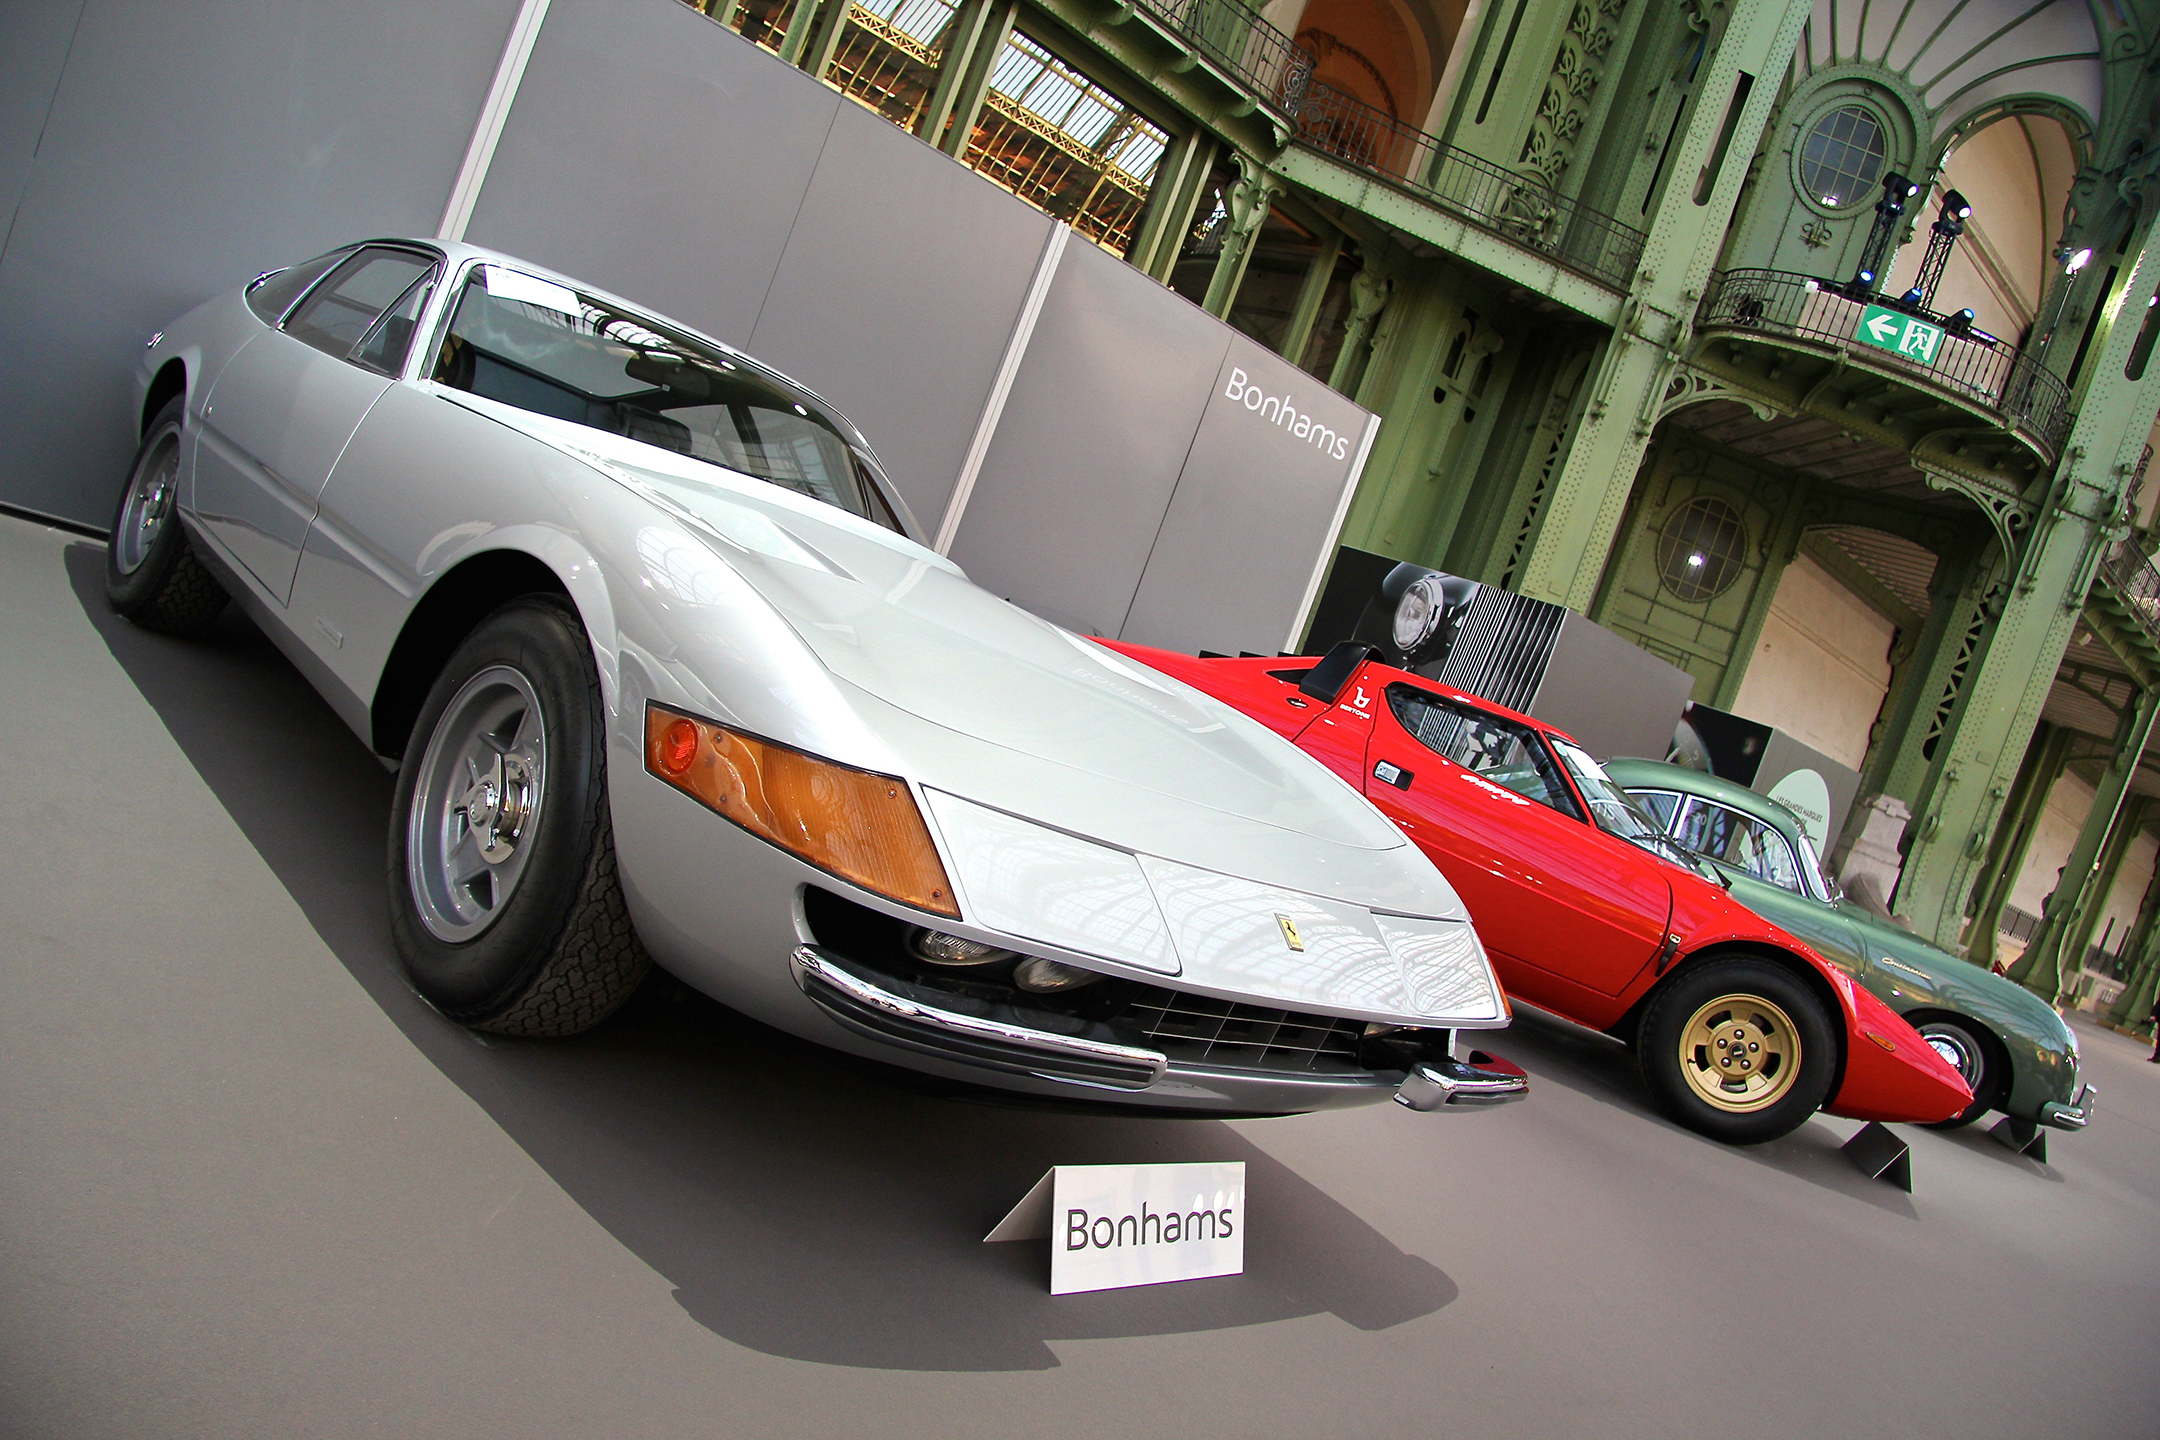 Ferrari 365 GTB/4 Daytona Berlinetta 1972 - Bonhams 2017 - hall - Grand Palais - photo - Ludo Ferrari